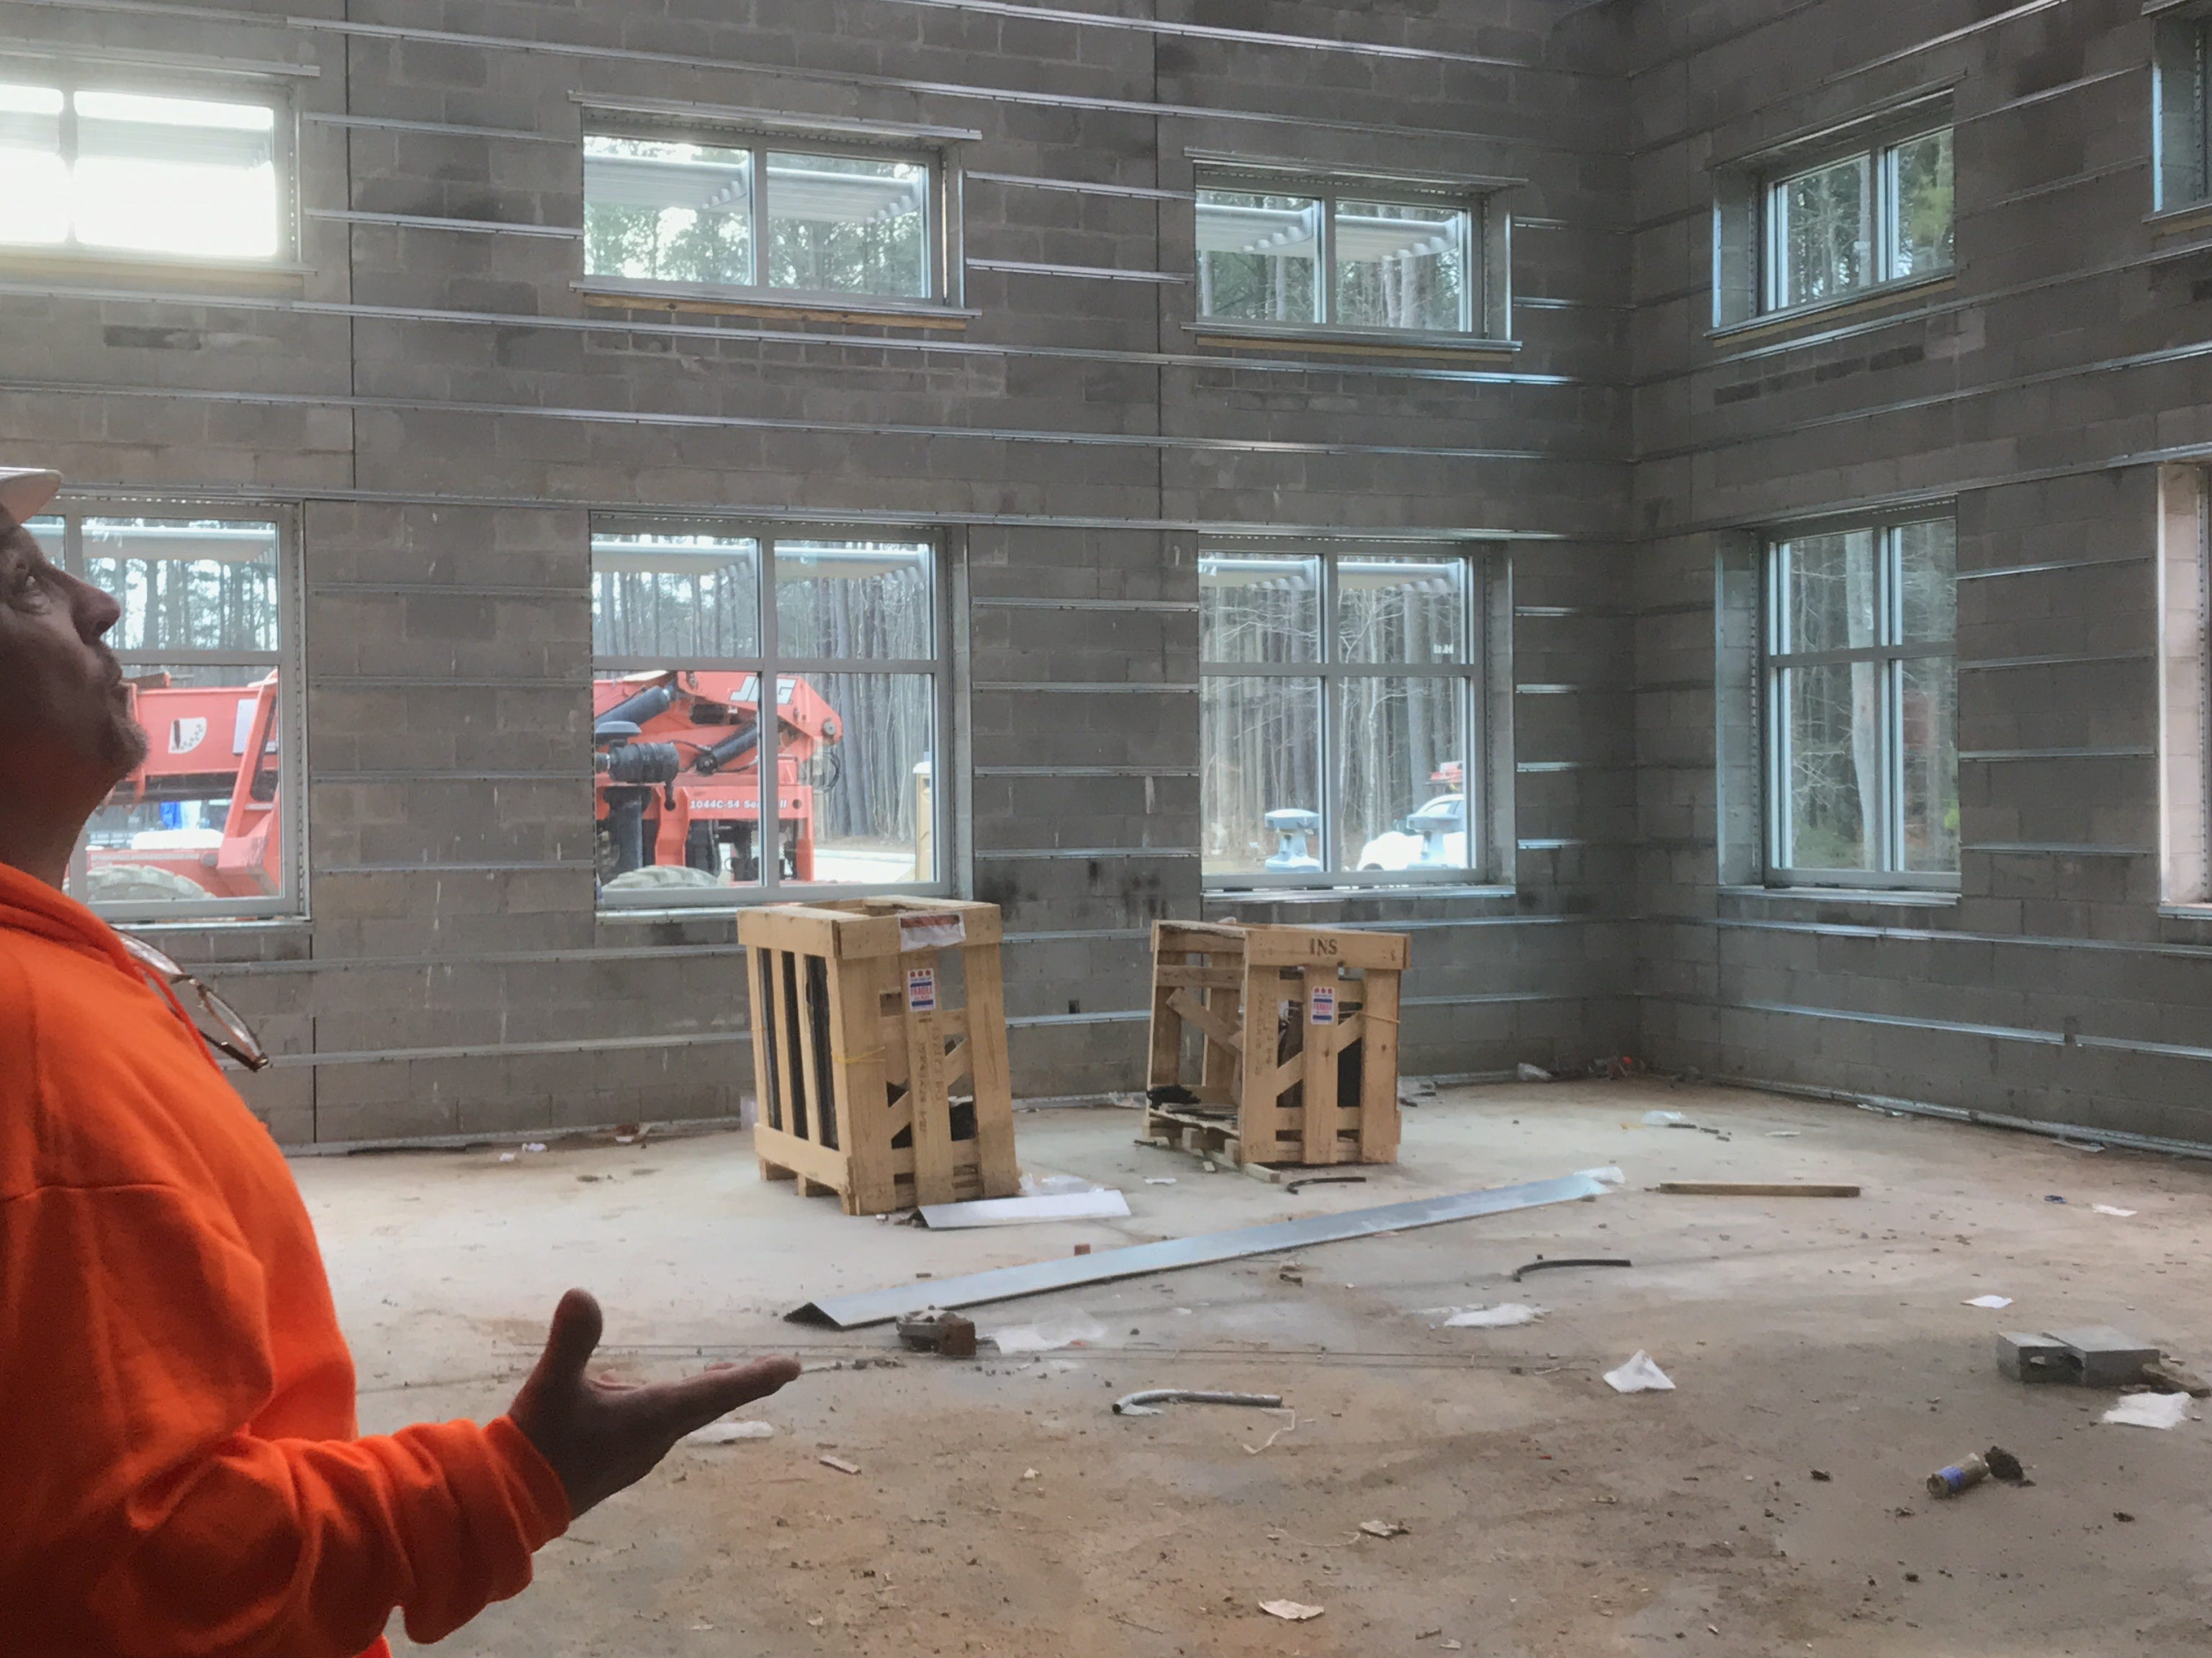 Construction of the new administrative and academic building at Eastern Shore Community in Melfa, Virginia  is making good progress. A tour led by VCCS inspector Joe Habel on Wednesday, Feb. 6, 2019 showed off some of the building's features, such asa the student lounge, pictured here.